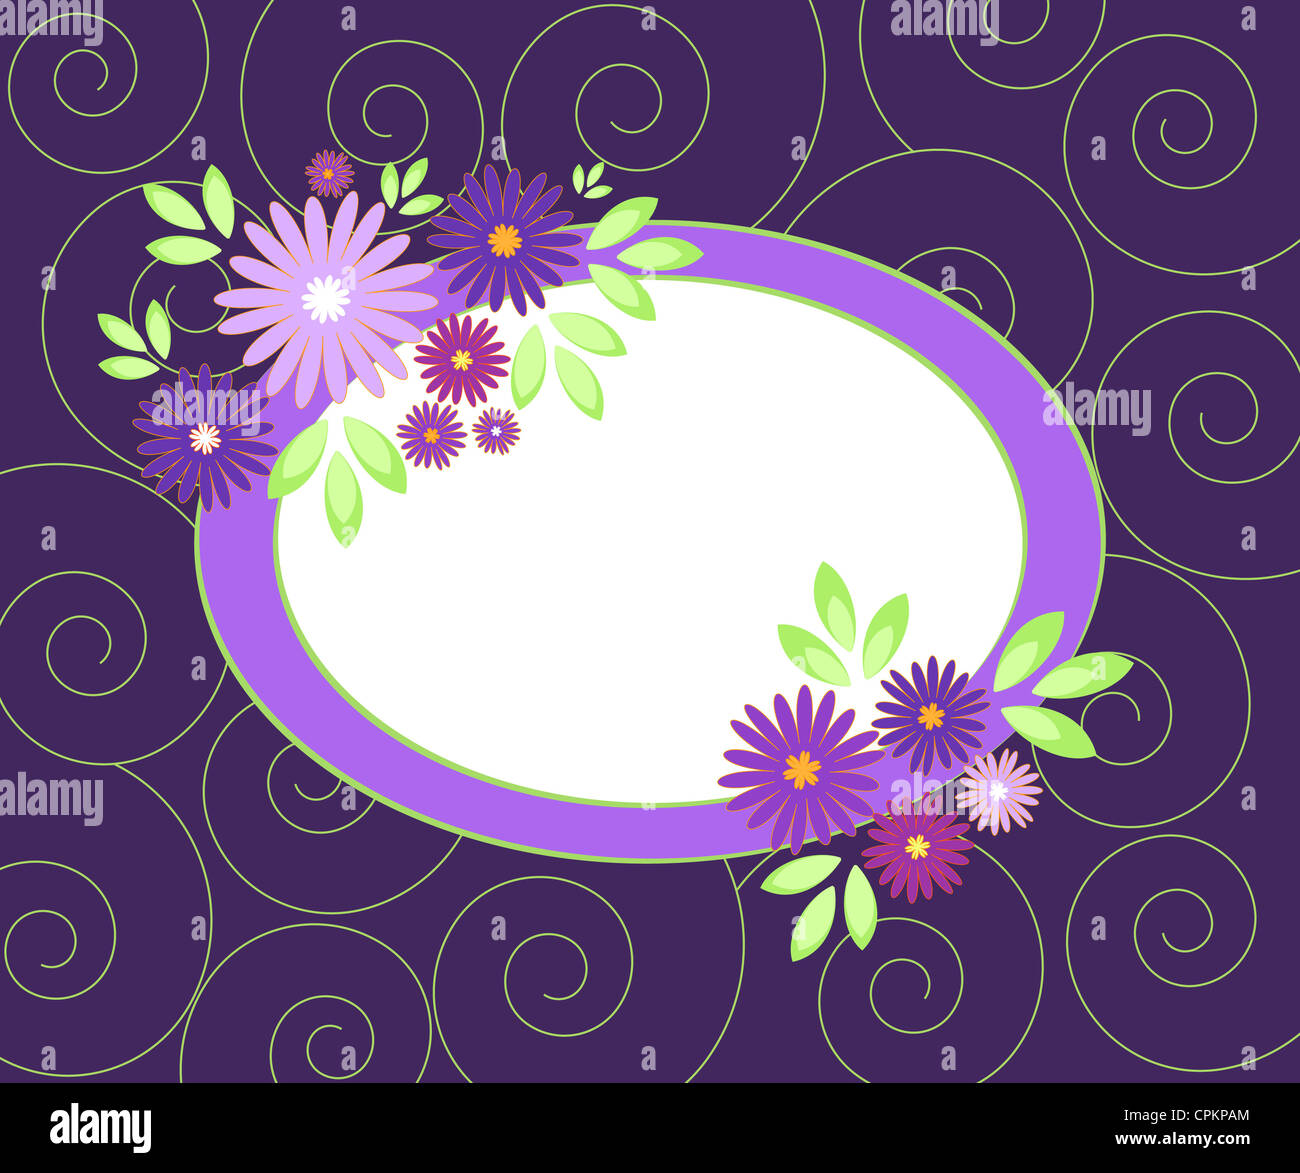 Violet flowers frame on spiral pattern Stock Photo